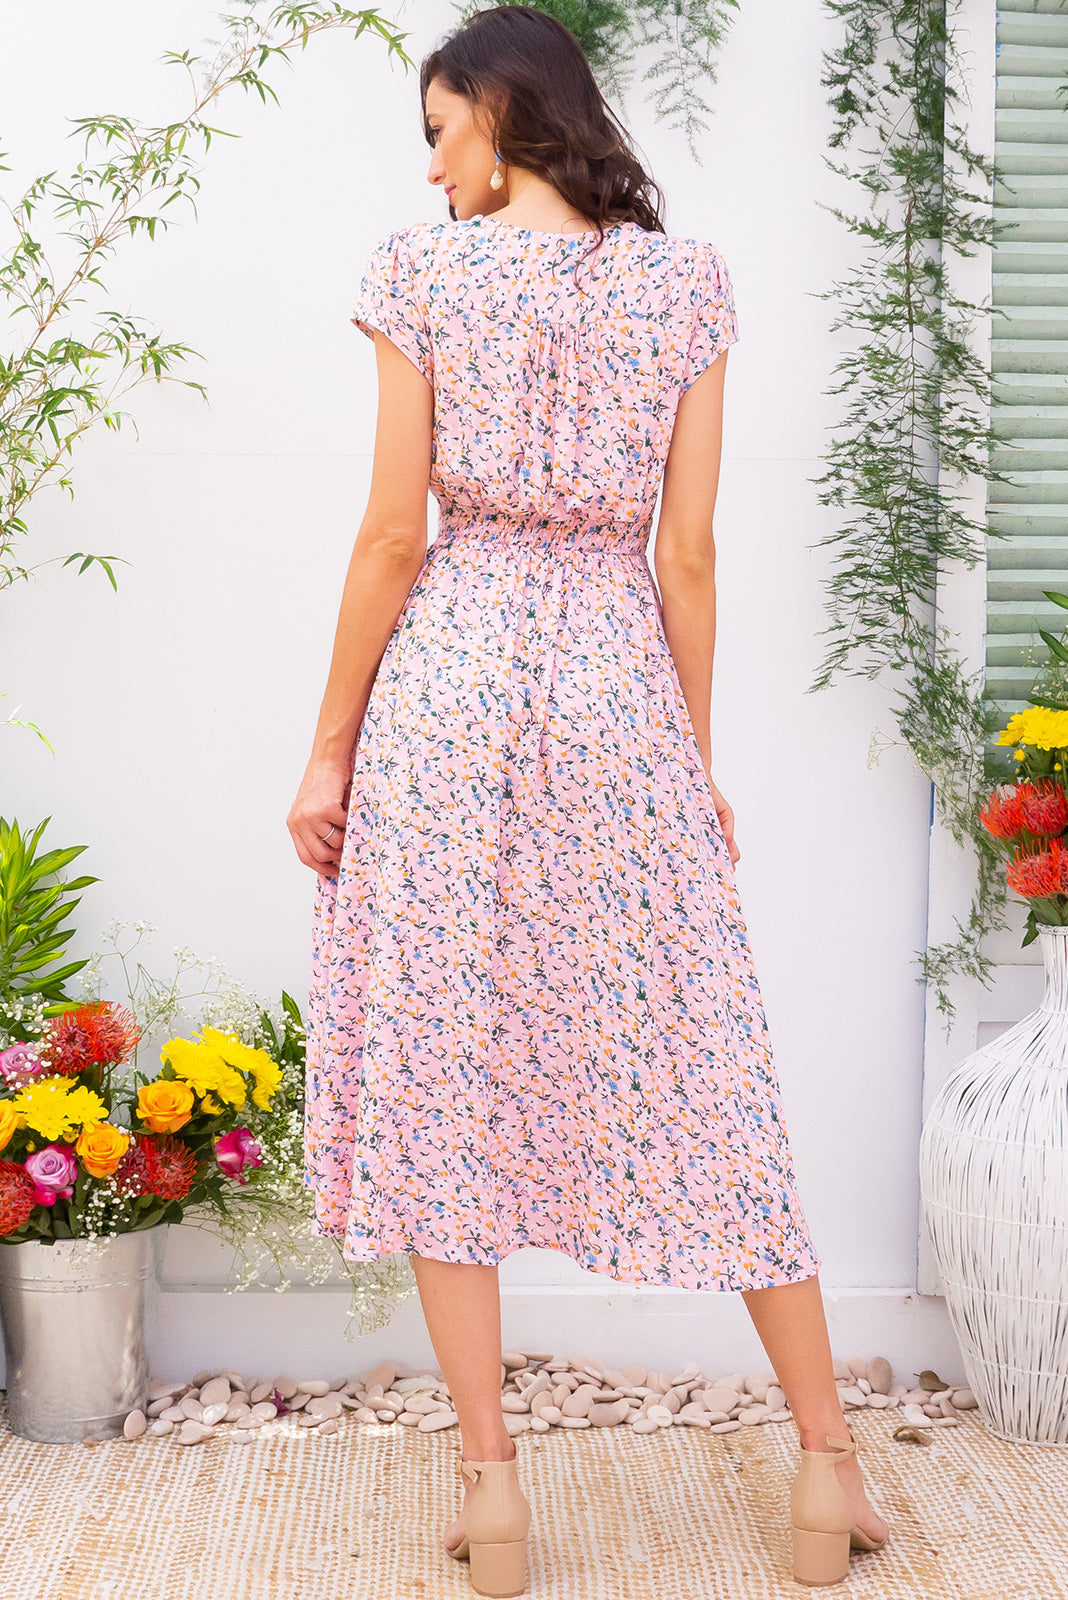 Lizzie Pink Lemonade Midi dress features a vintage inspired fitted basque waist and elasticated waist with a cap sleeve and deep v neck the fabric is a soft woven rayon in a soft petal pink floral print